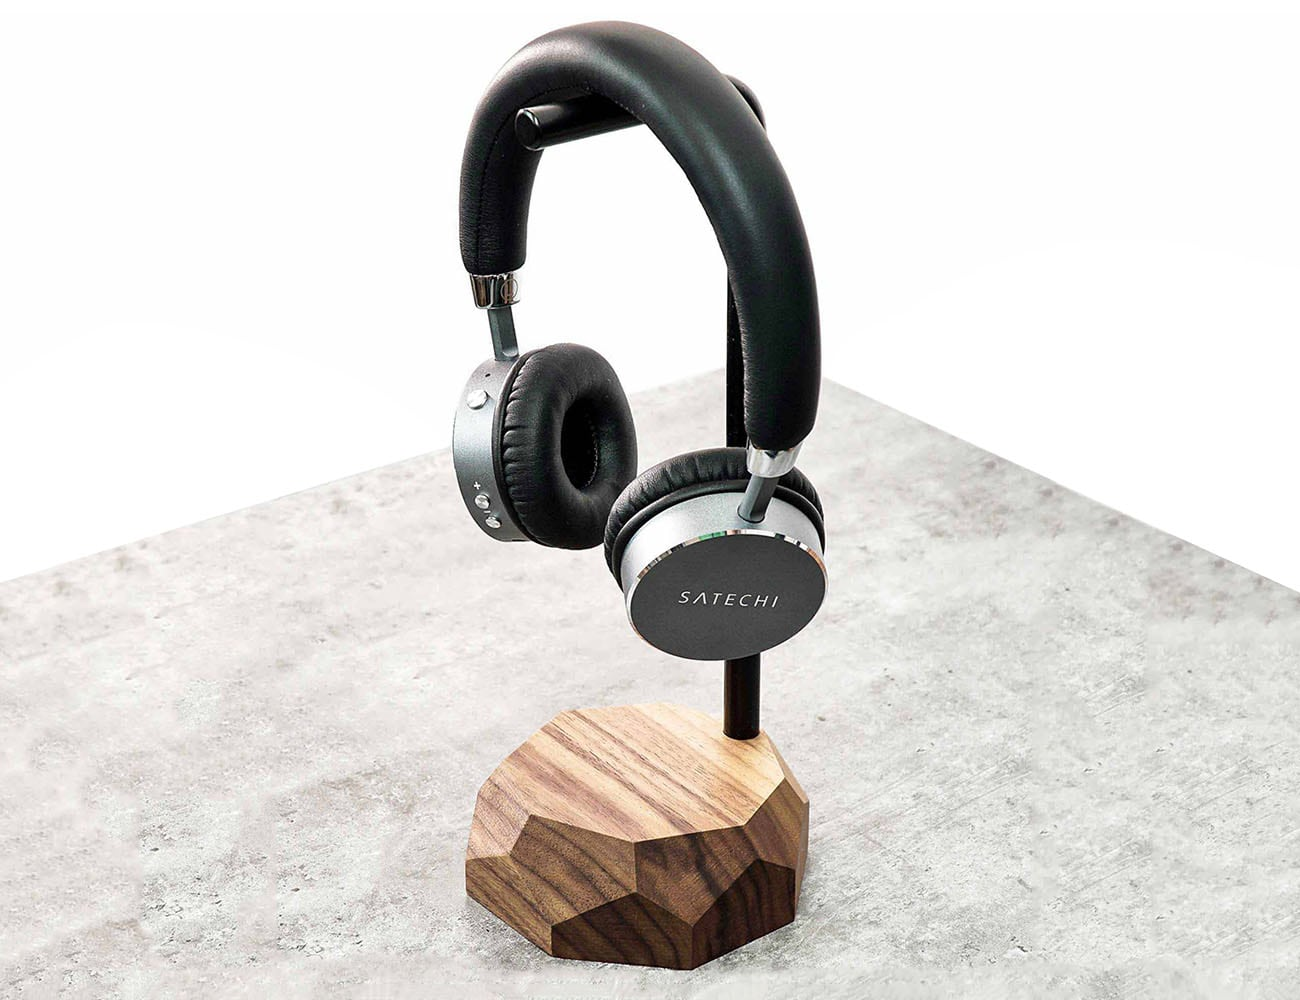 Oakywood Wooden Headphone Stand has beautifully sculpted base